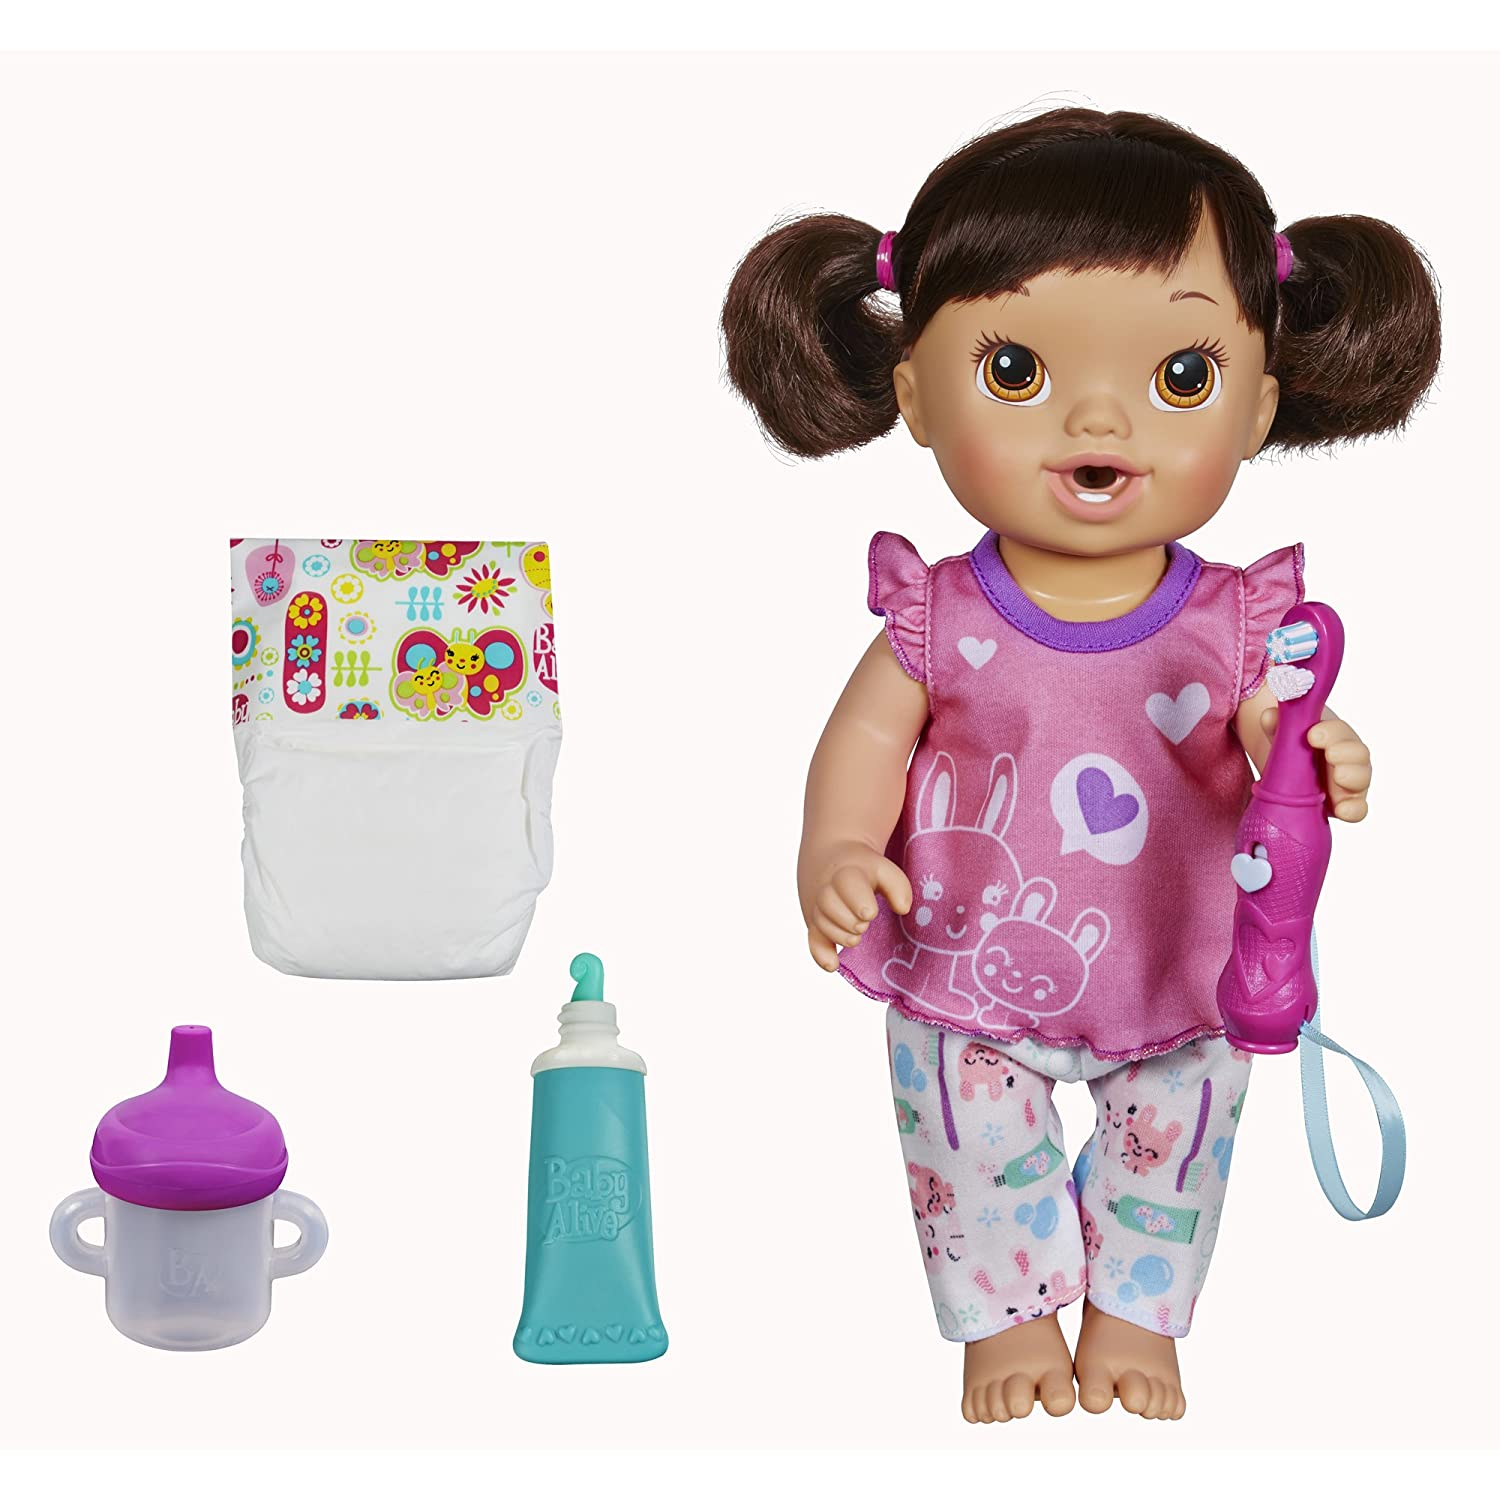 Amazon Baby Alive Brushy Brushy Baby Doll Brunette Toys & Games